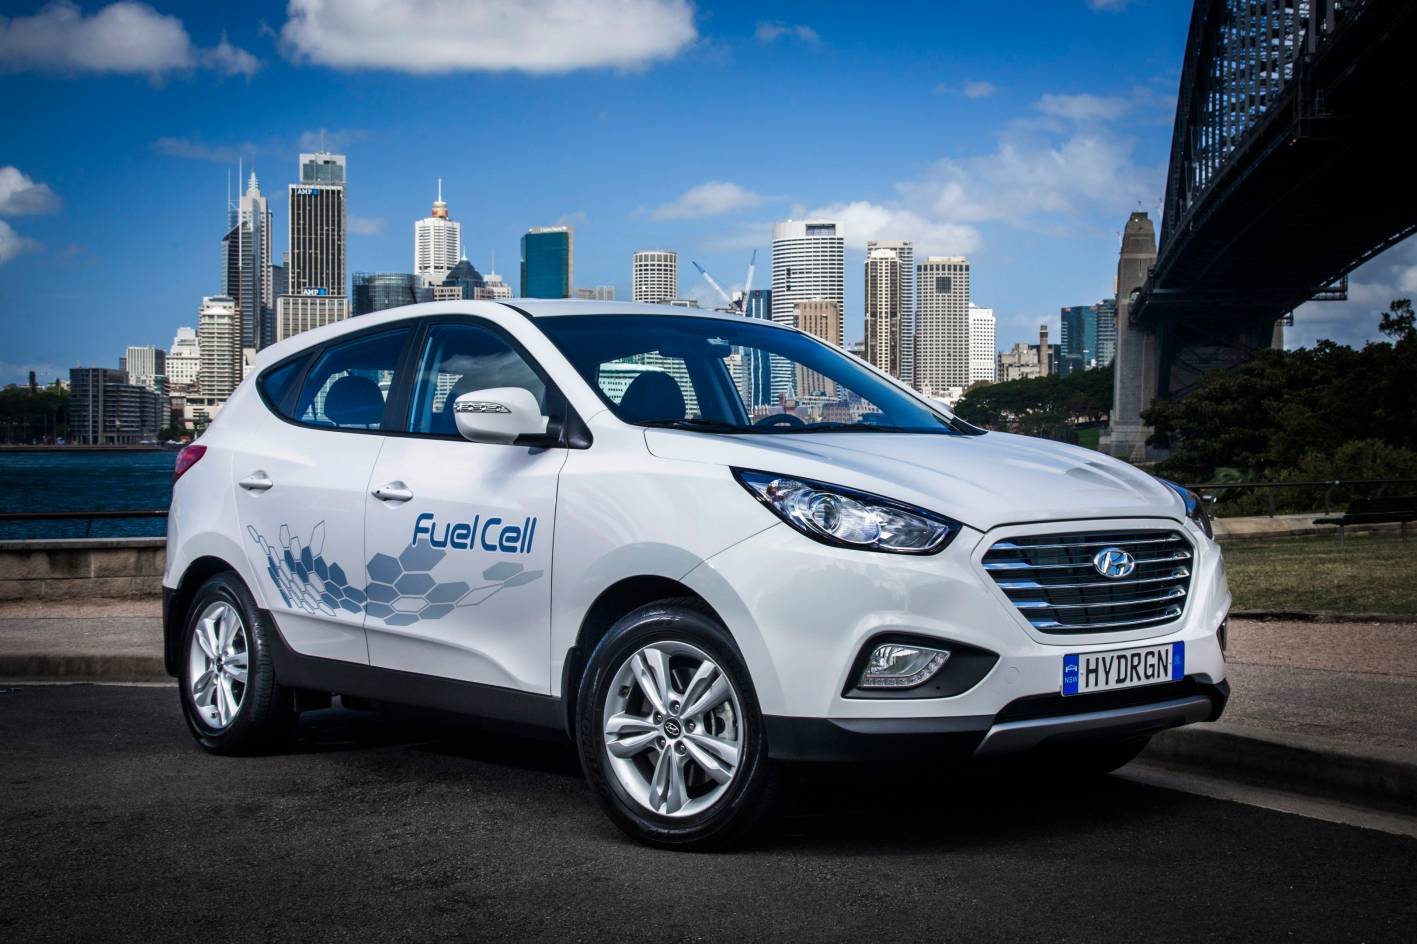 Hyundai Secures Australia's First Hydrogen Vehicle Order